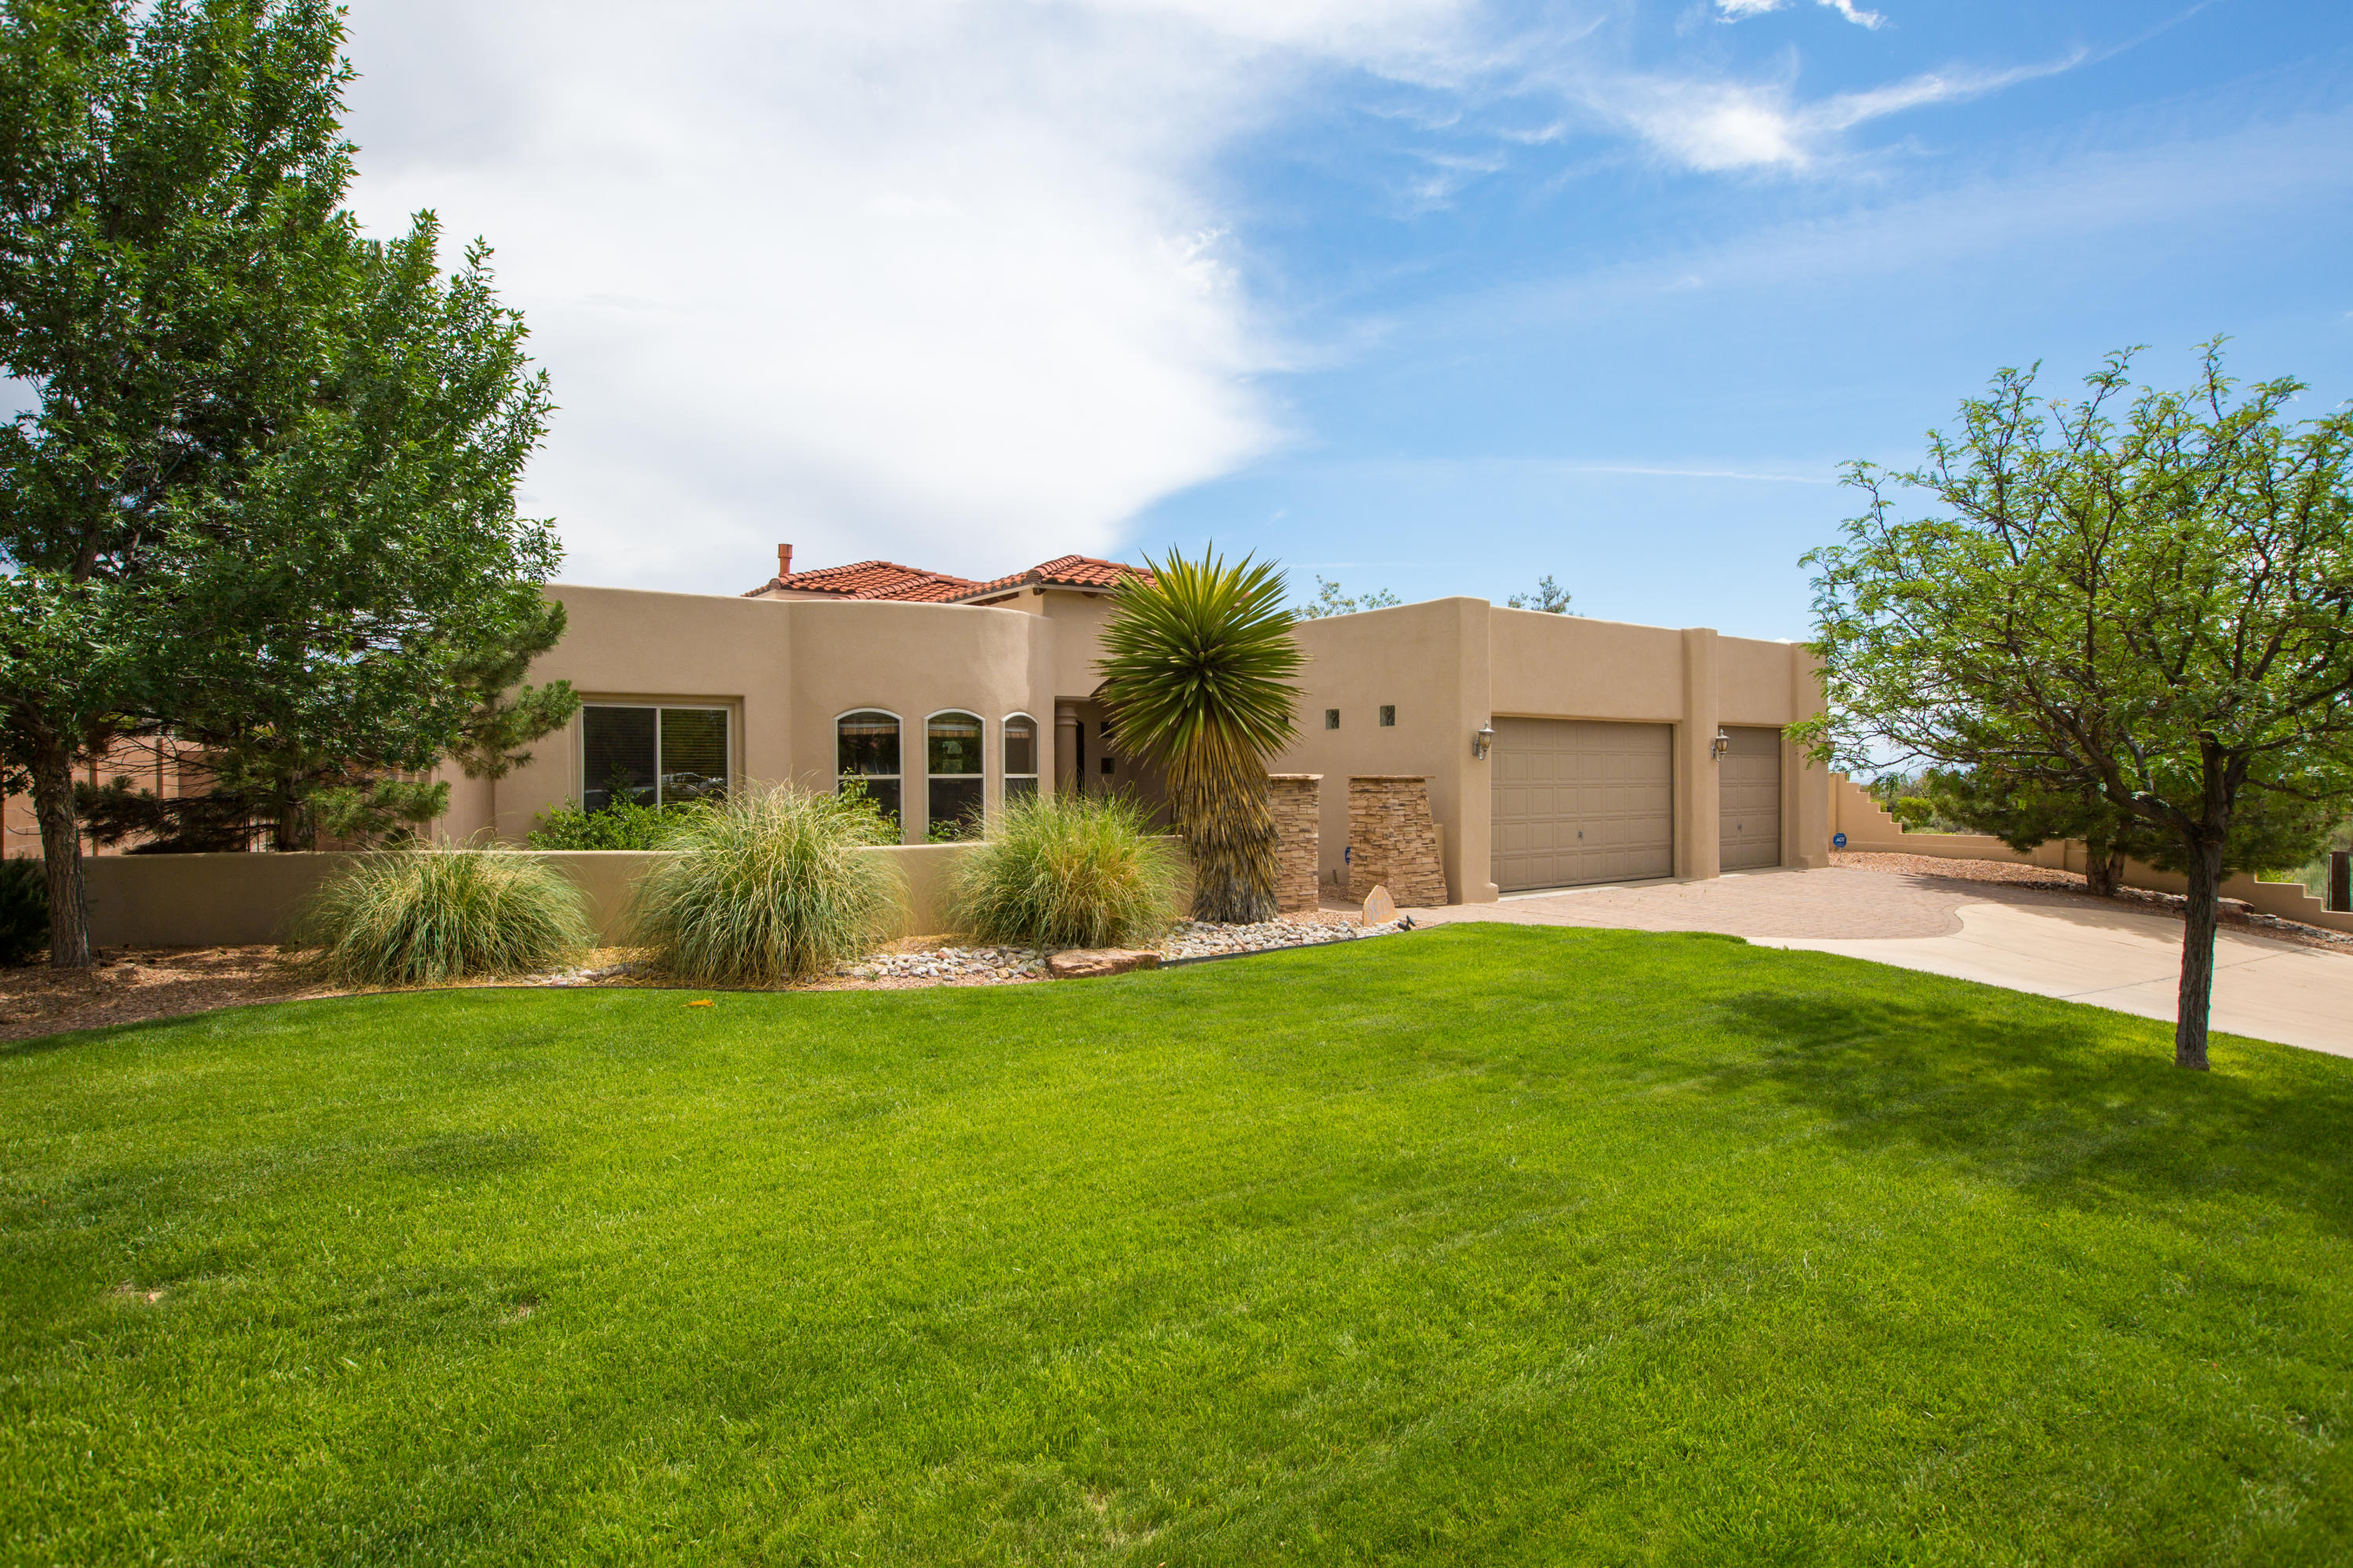 Stunning New Mexican, Single Level Custom Home in Highly Desired North ABQ neighborhood of Primrose Pointe. Naturally Bright & Inviting Well-Cared for home w/T&G ceilings, arched doorways & custom touches throughout. Surround Sound In&Out, Open Gourmet Kitchen w/Granite, Sunny Breakfast Nook, Sub-Zero & Wolfe Appliances, Kinetico H20 system. Exquisite Master Suite w/Large Walk-In Cali. Closet, Huge Bathroom w/Jetted Tub & FP. +2 other Master Suites w/Full baths. Office off main entrance has Beautiful Views of the nearby Sandia Mountains & can serve as a fourth bedroom. Roof-top deck w/360 Views of the Rio Grande Valley & surrounding mountains. Close to Trails, Park, Grocery, Retail. Ease of access to Paseo Del Norte & Tramway Blvd.